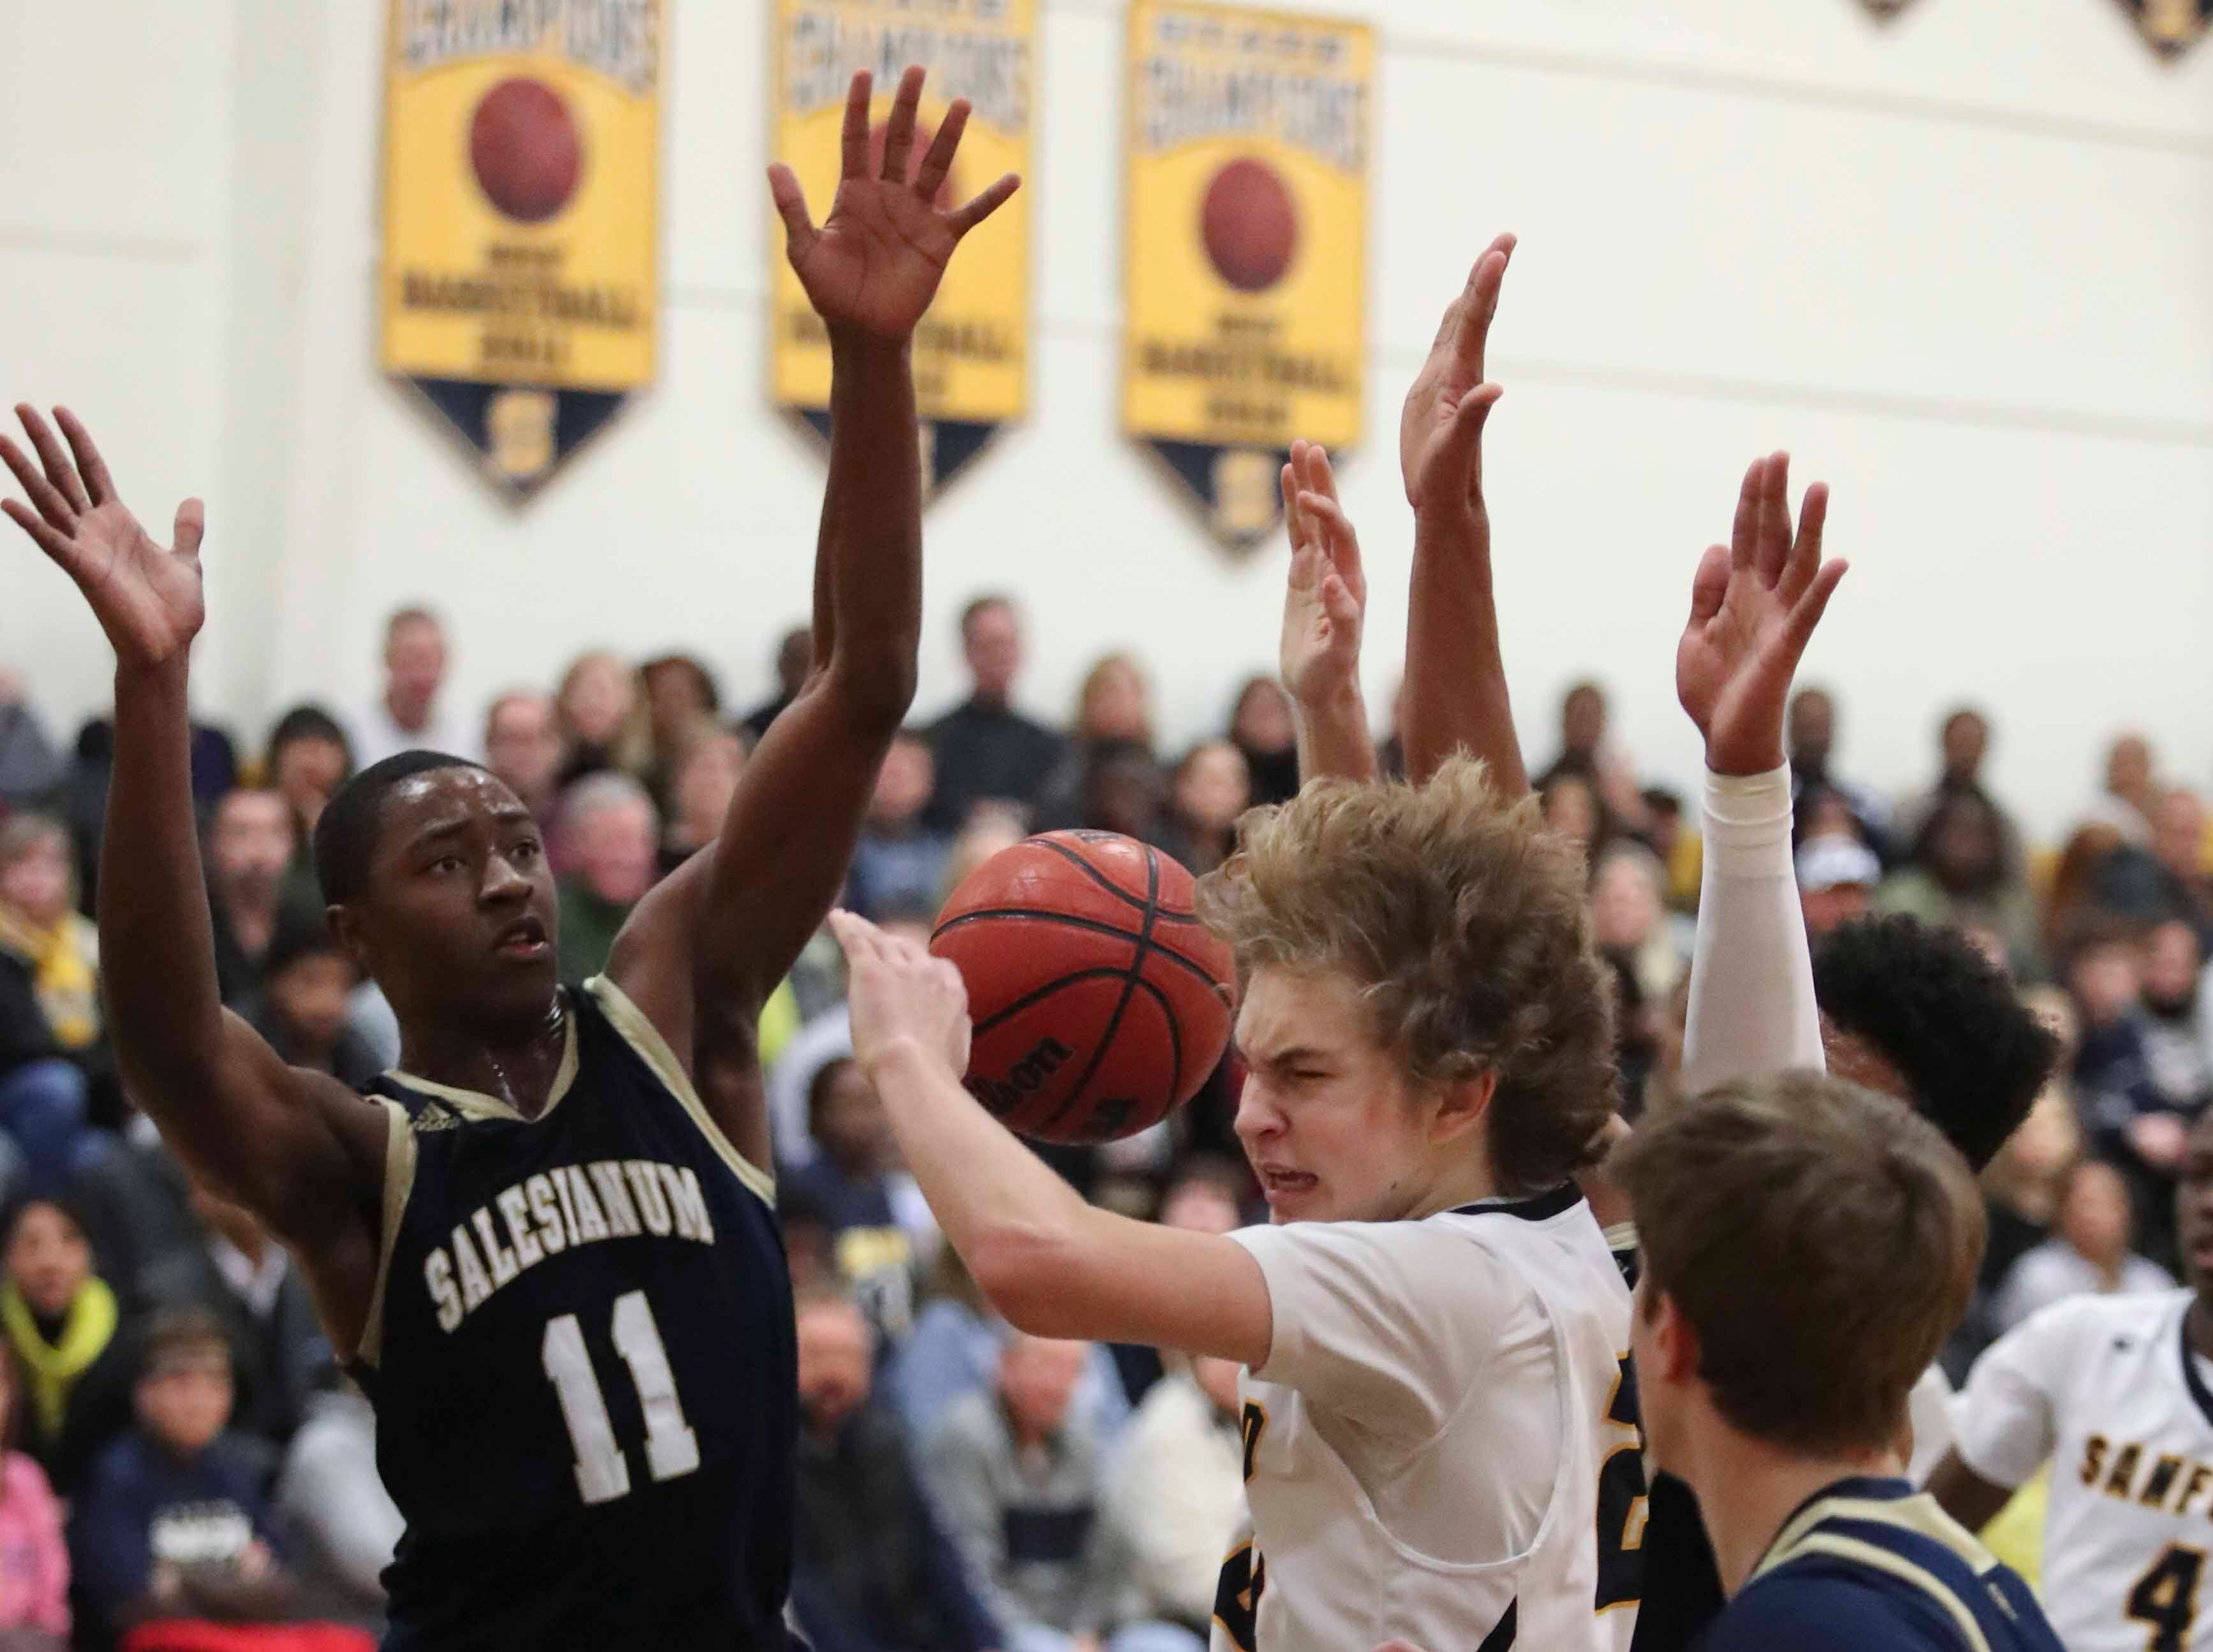 Sanford's Carter Ruby goes to the basket against Salesianum's Darnell Vaughan (left) and Thomas Montooth during the Warriors' 65-47 win at home Friday.